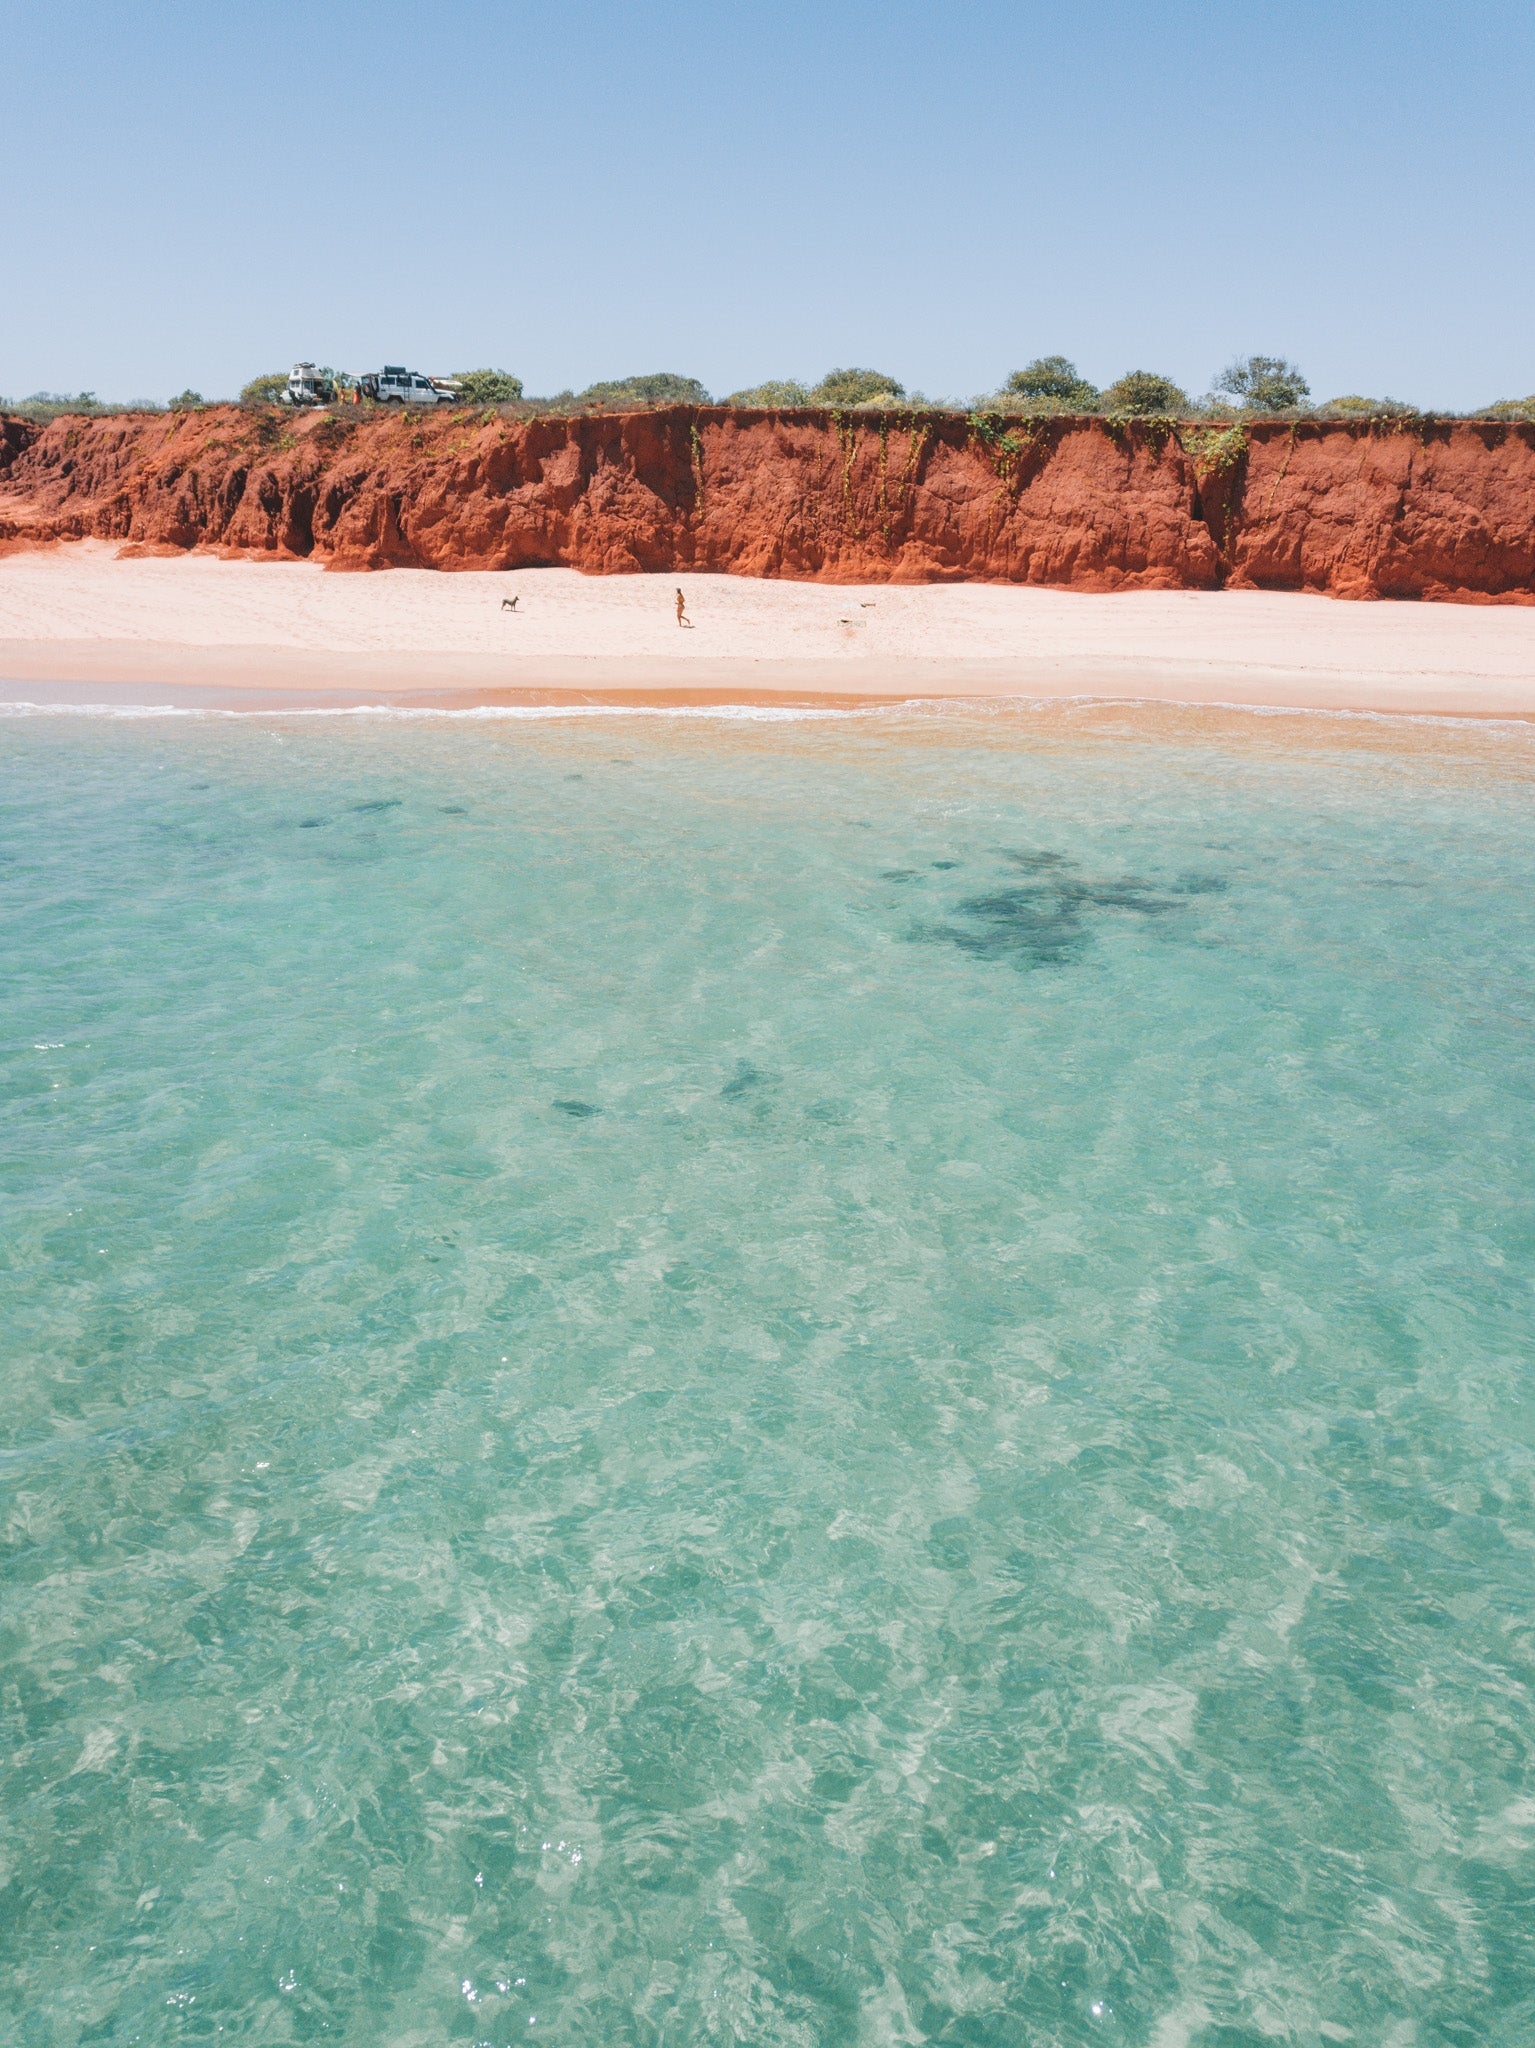 broome, dampier peninsula, james price point, the kimberleys, kimberleys